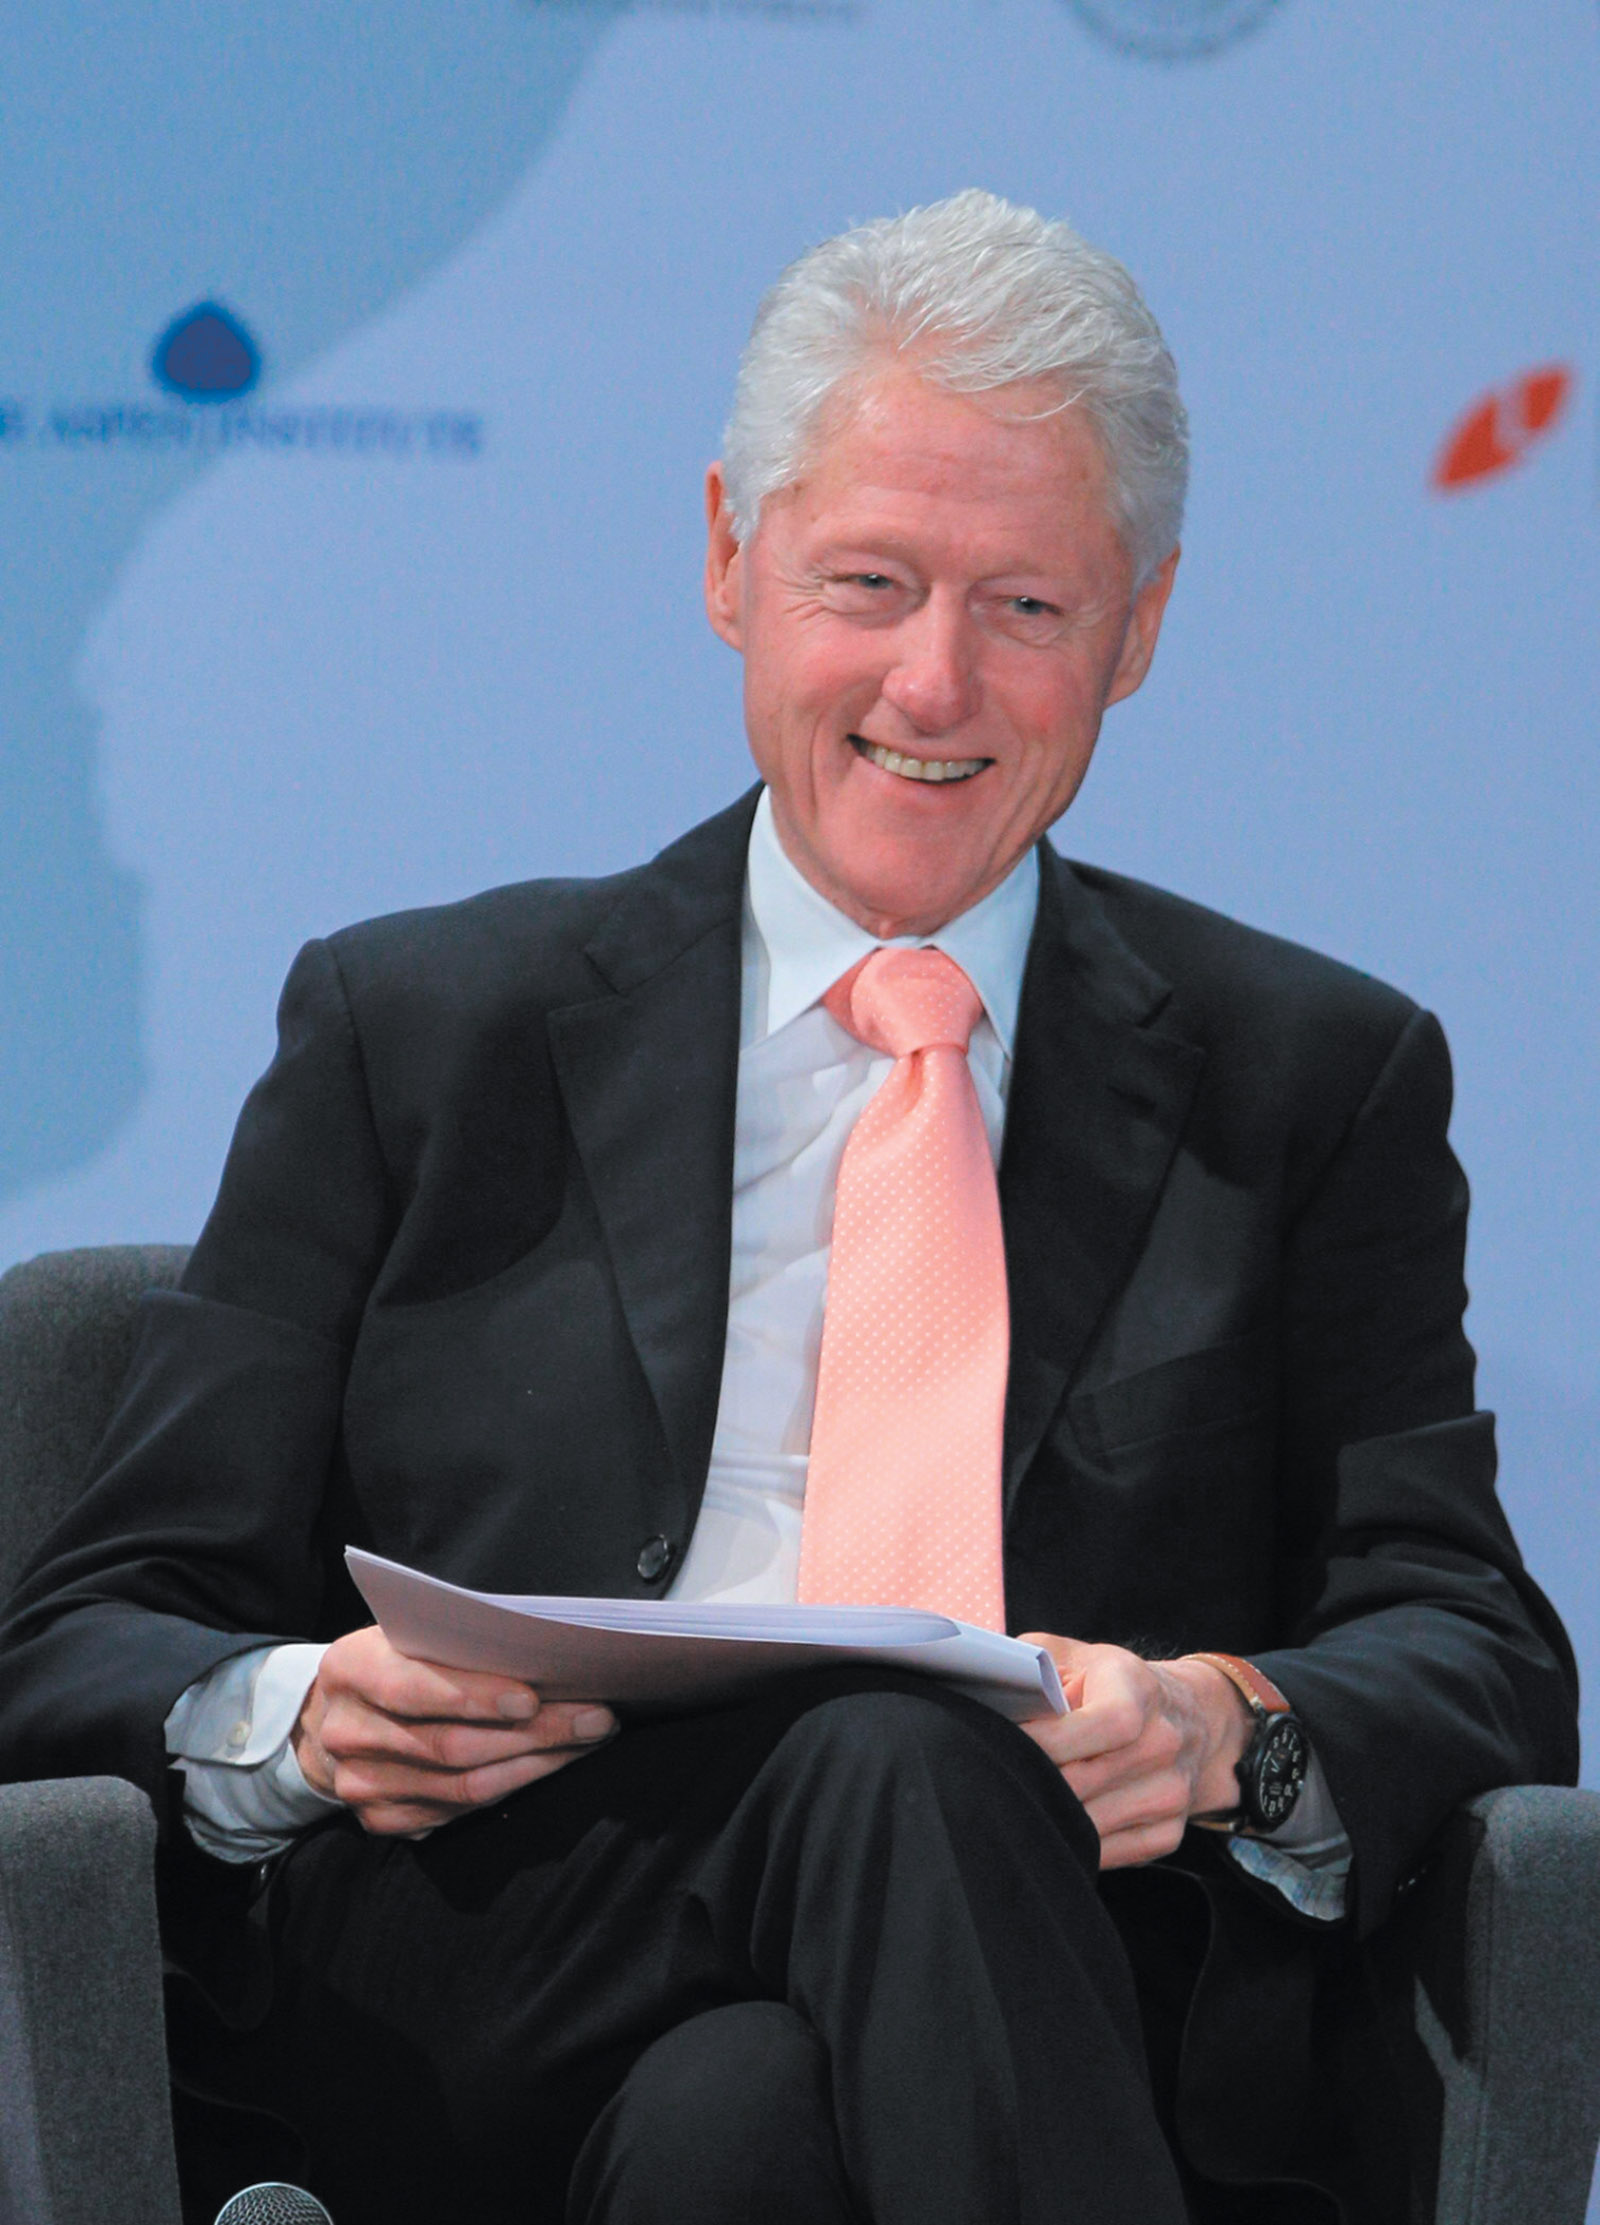 Bill Clinton at a summit on youth and productivity organized by the for-profit Laureate International Universities, Mexico City, February 2015